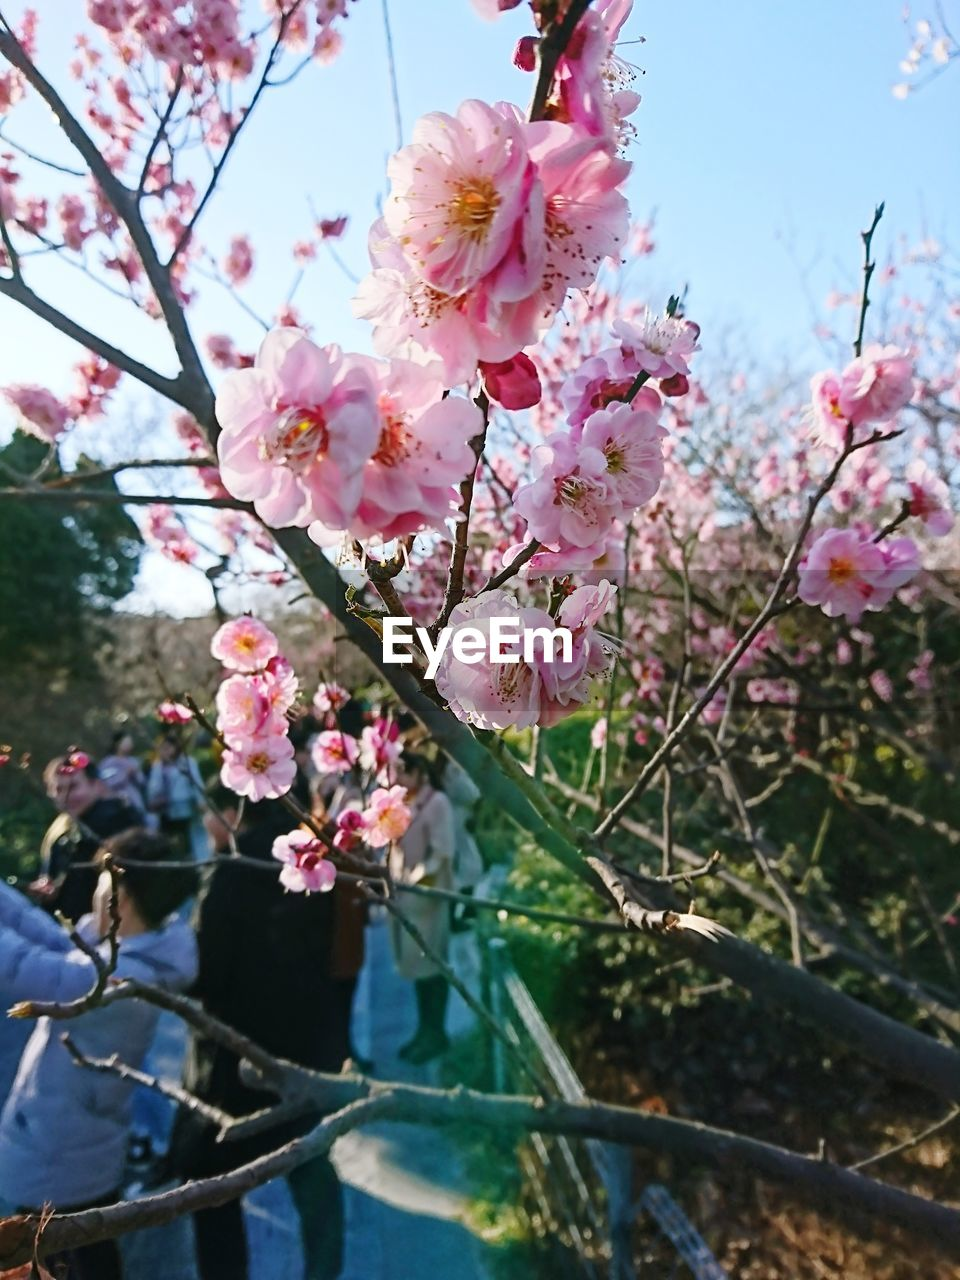 flowering plant, flower, plant, growth, freshness, pink color, fragility, vulnerability, tree, beauty in nature, blossom, branch, nature, day, springtime, close-up, focus on foreground, twig, petal, outdoors, flower head, cherry blossom, cherry tree, spring